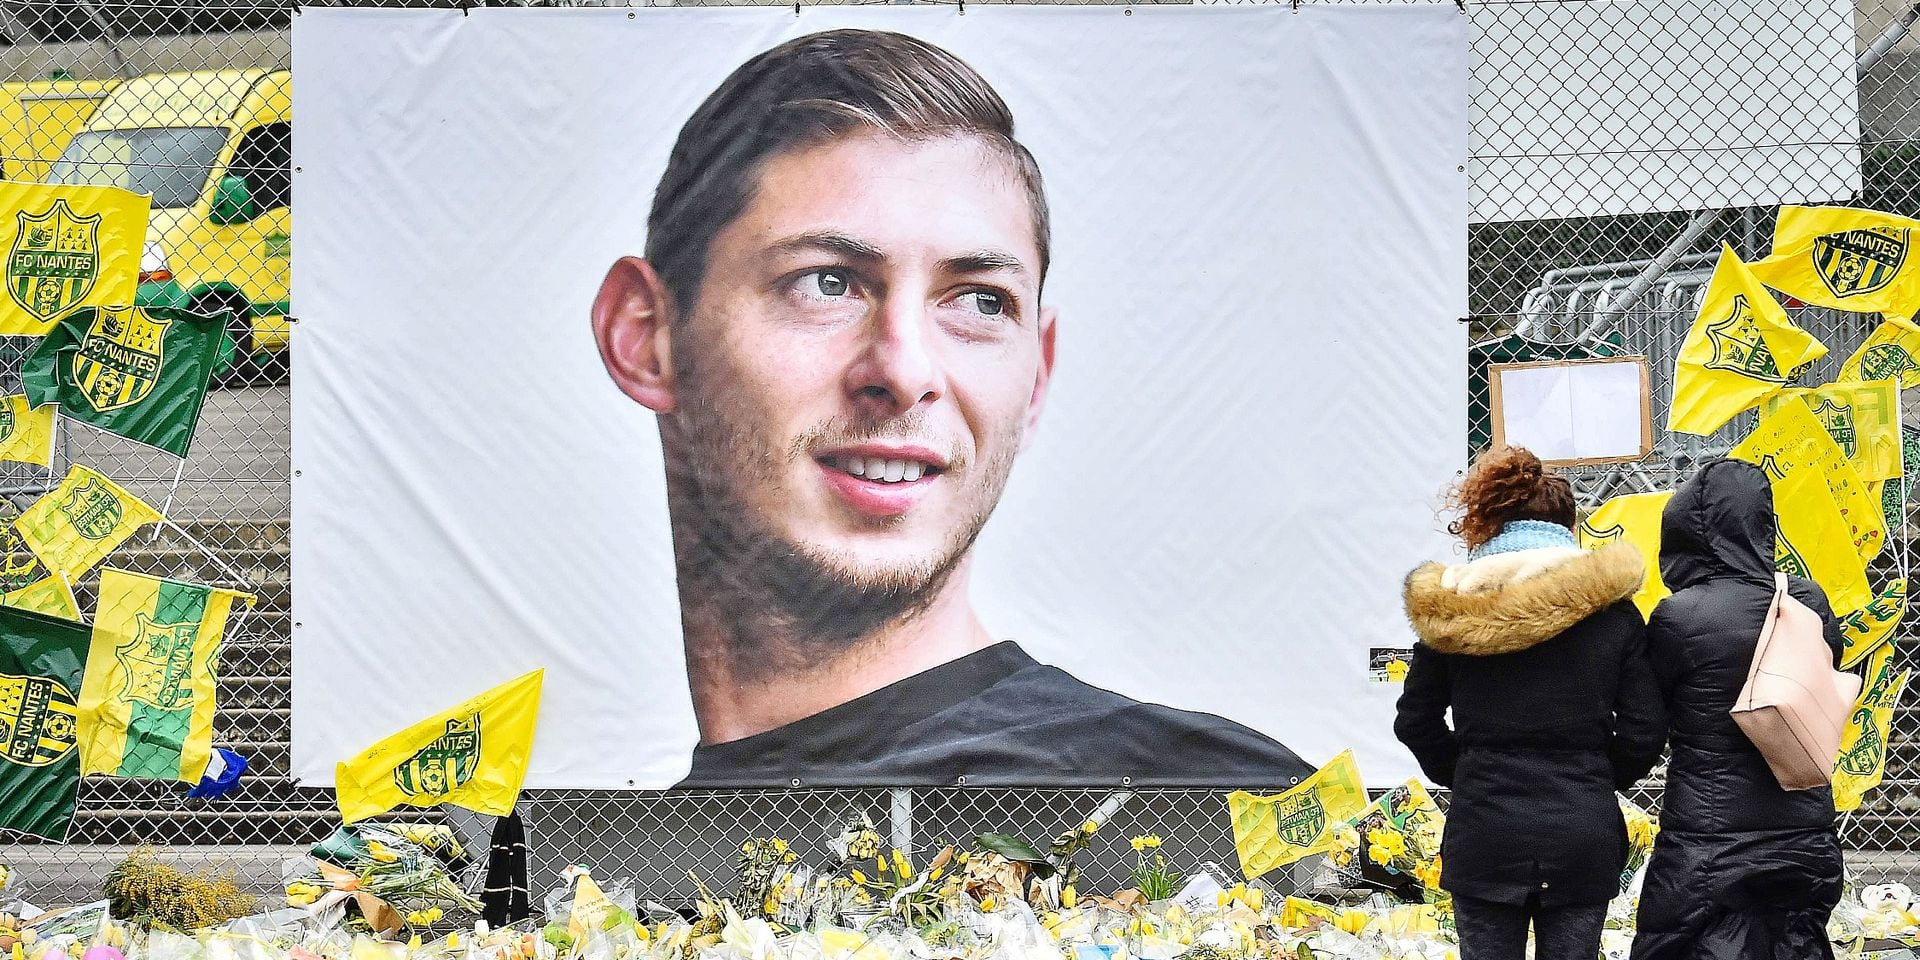 People look at yellow flowers displayed in front of the portrait of Argentinian forward Emiliano Sala at the Beaujoire stadium in Nantes, on February 8, 2019. - FC Nantes football club announced on February 8, 2019 that it will freeze the #9 jersey as a tribute to Cardiff City and former Nantes footballer Emiliano Sala who died in a plane crash in the English Channel on January 21, 2019. (Photo by LOIC VENANCE / AFP)